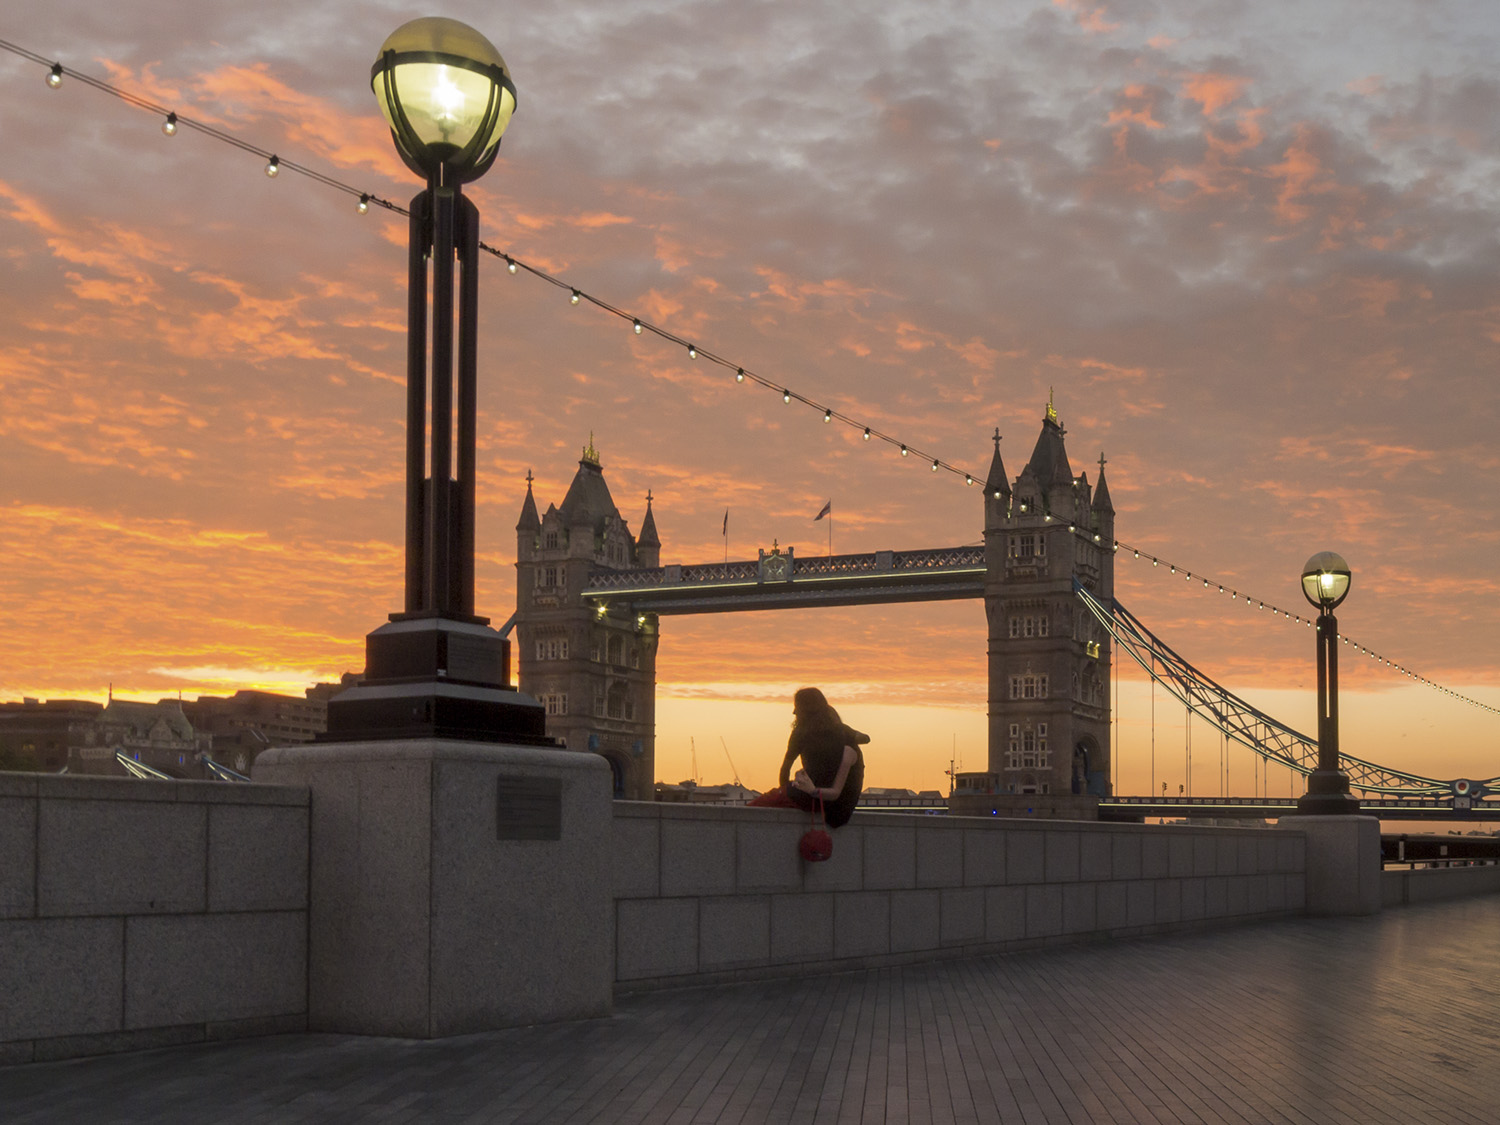 TG Tower Bridge Sunrise.jpg